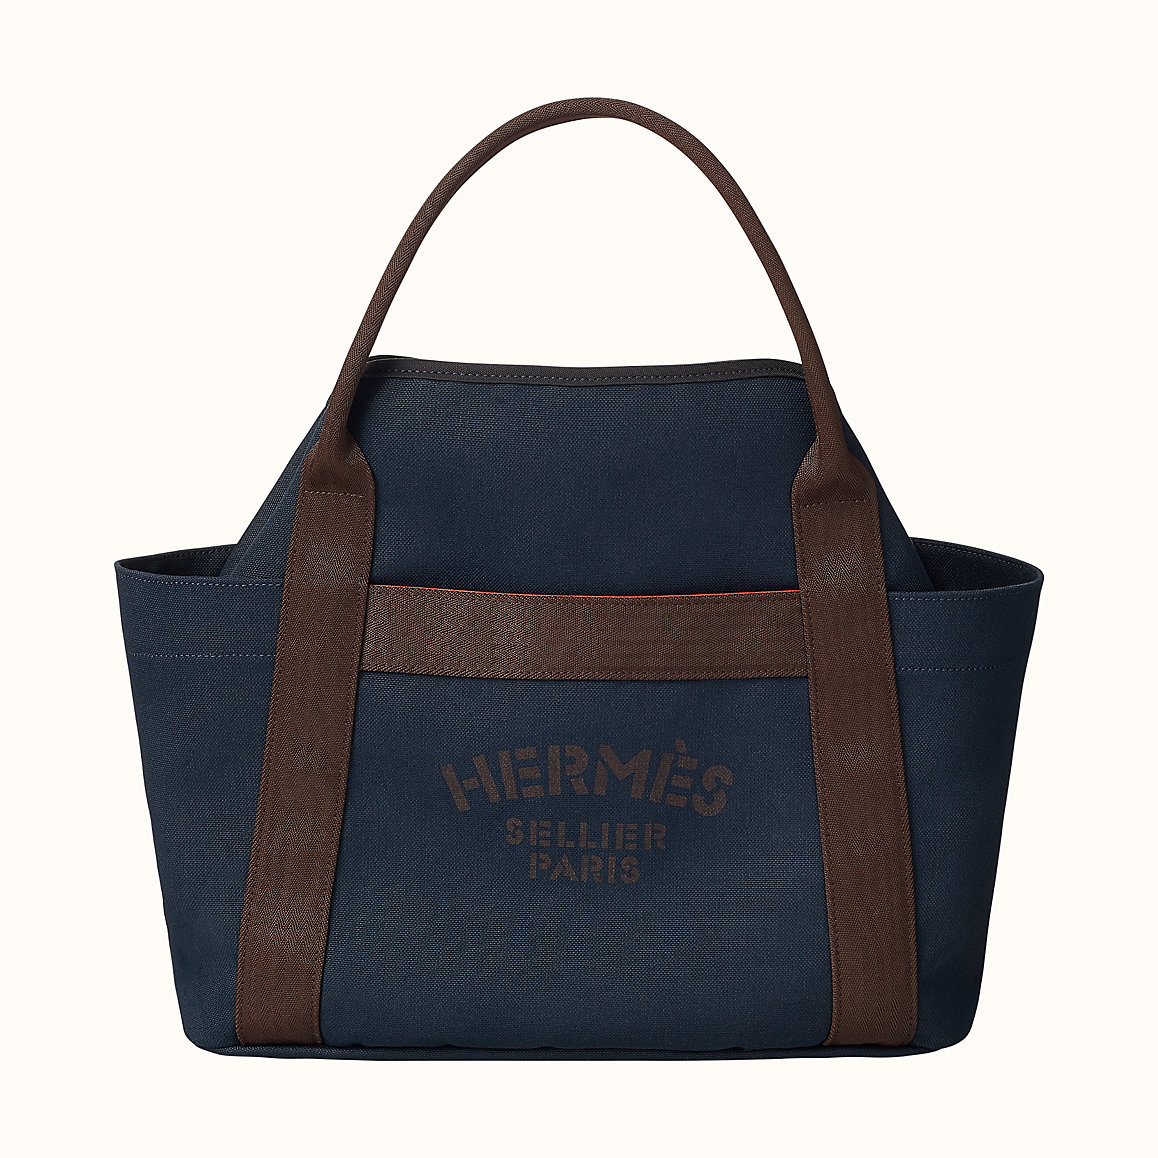 Hermes groom-boot-and-helmet-bag--068312CKAB-front-1-300-0-1158-1158_b.jpg